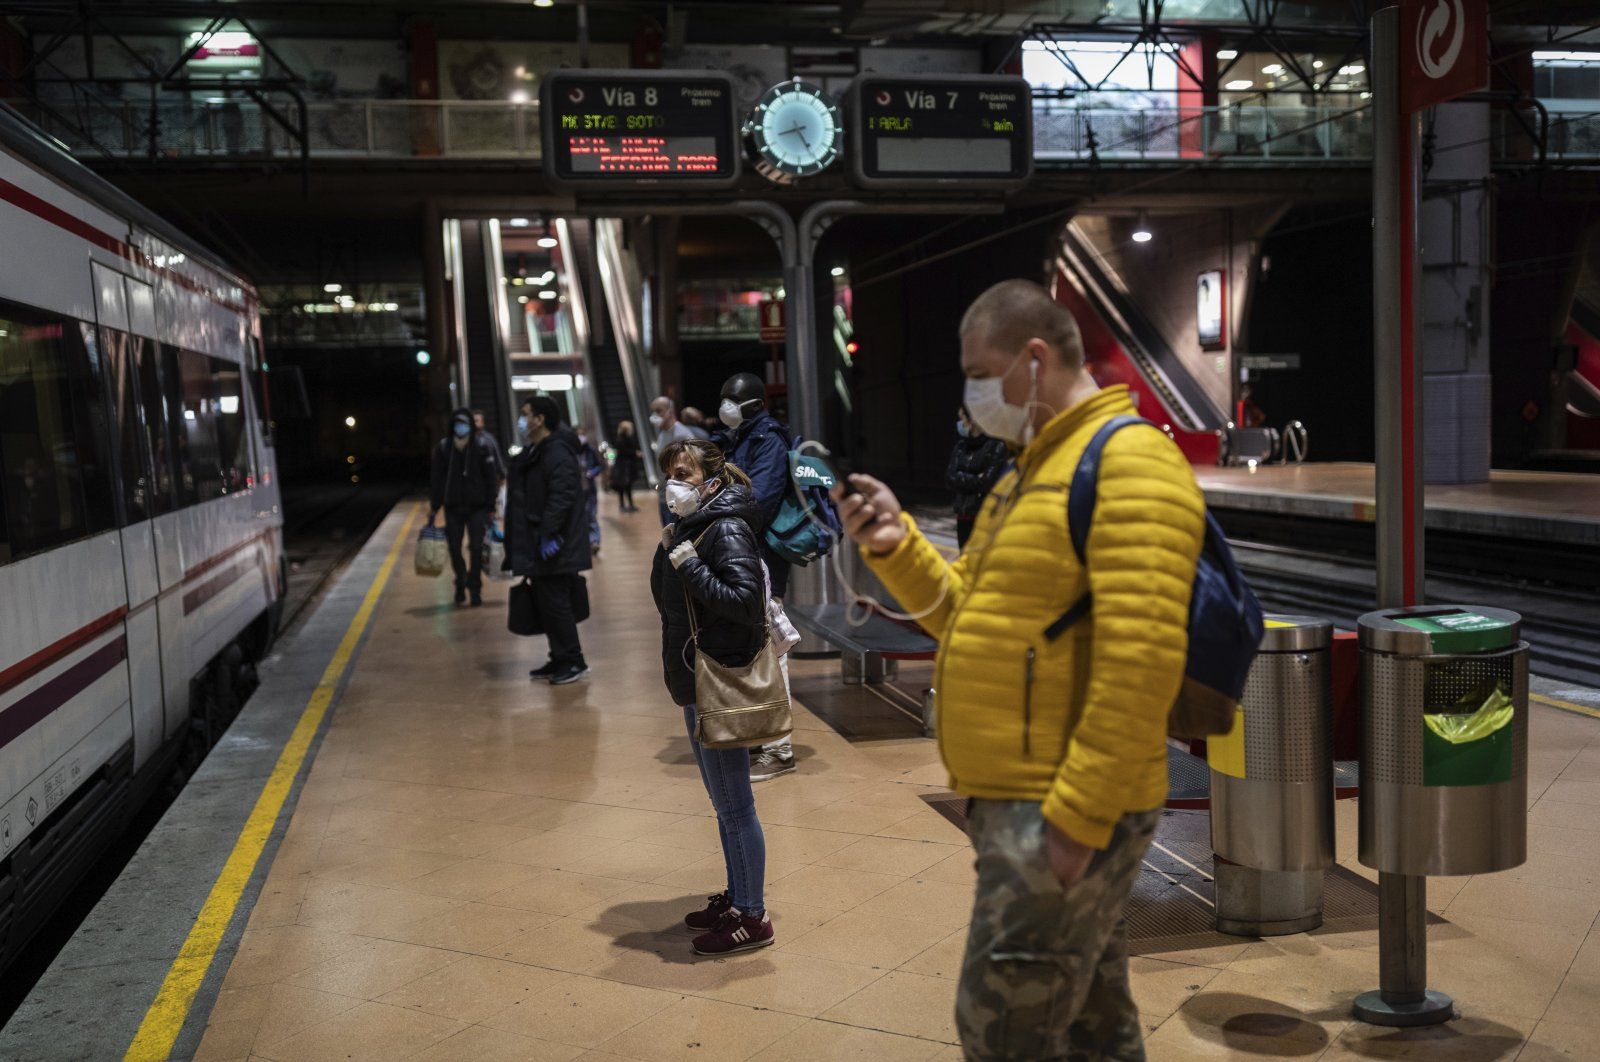 Commuters wear face masks to protect against the coronavirus while waiting on a platform at the Atocha train station, Madrid, April 13, 2020. (AP Photo)